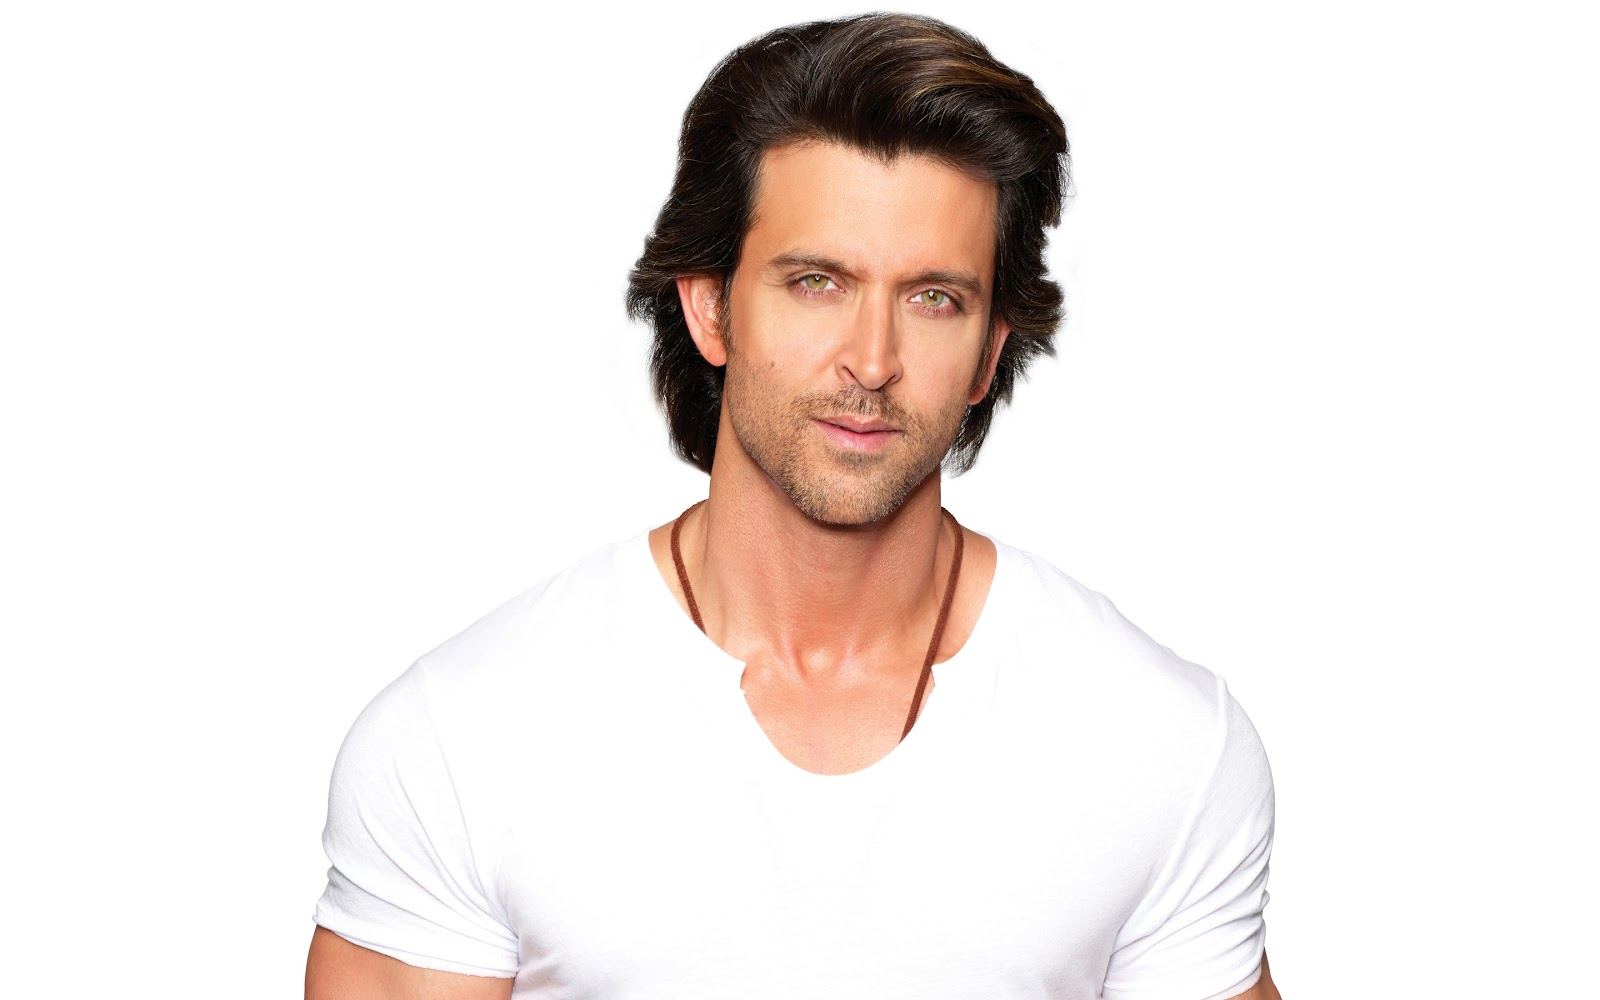 Actors Wallpapers Download Free: Hrithik Roshan High Definition Wide Screen 1080p HD